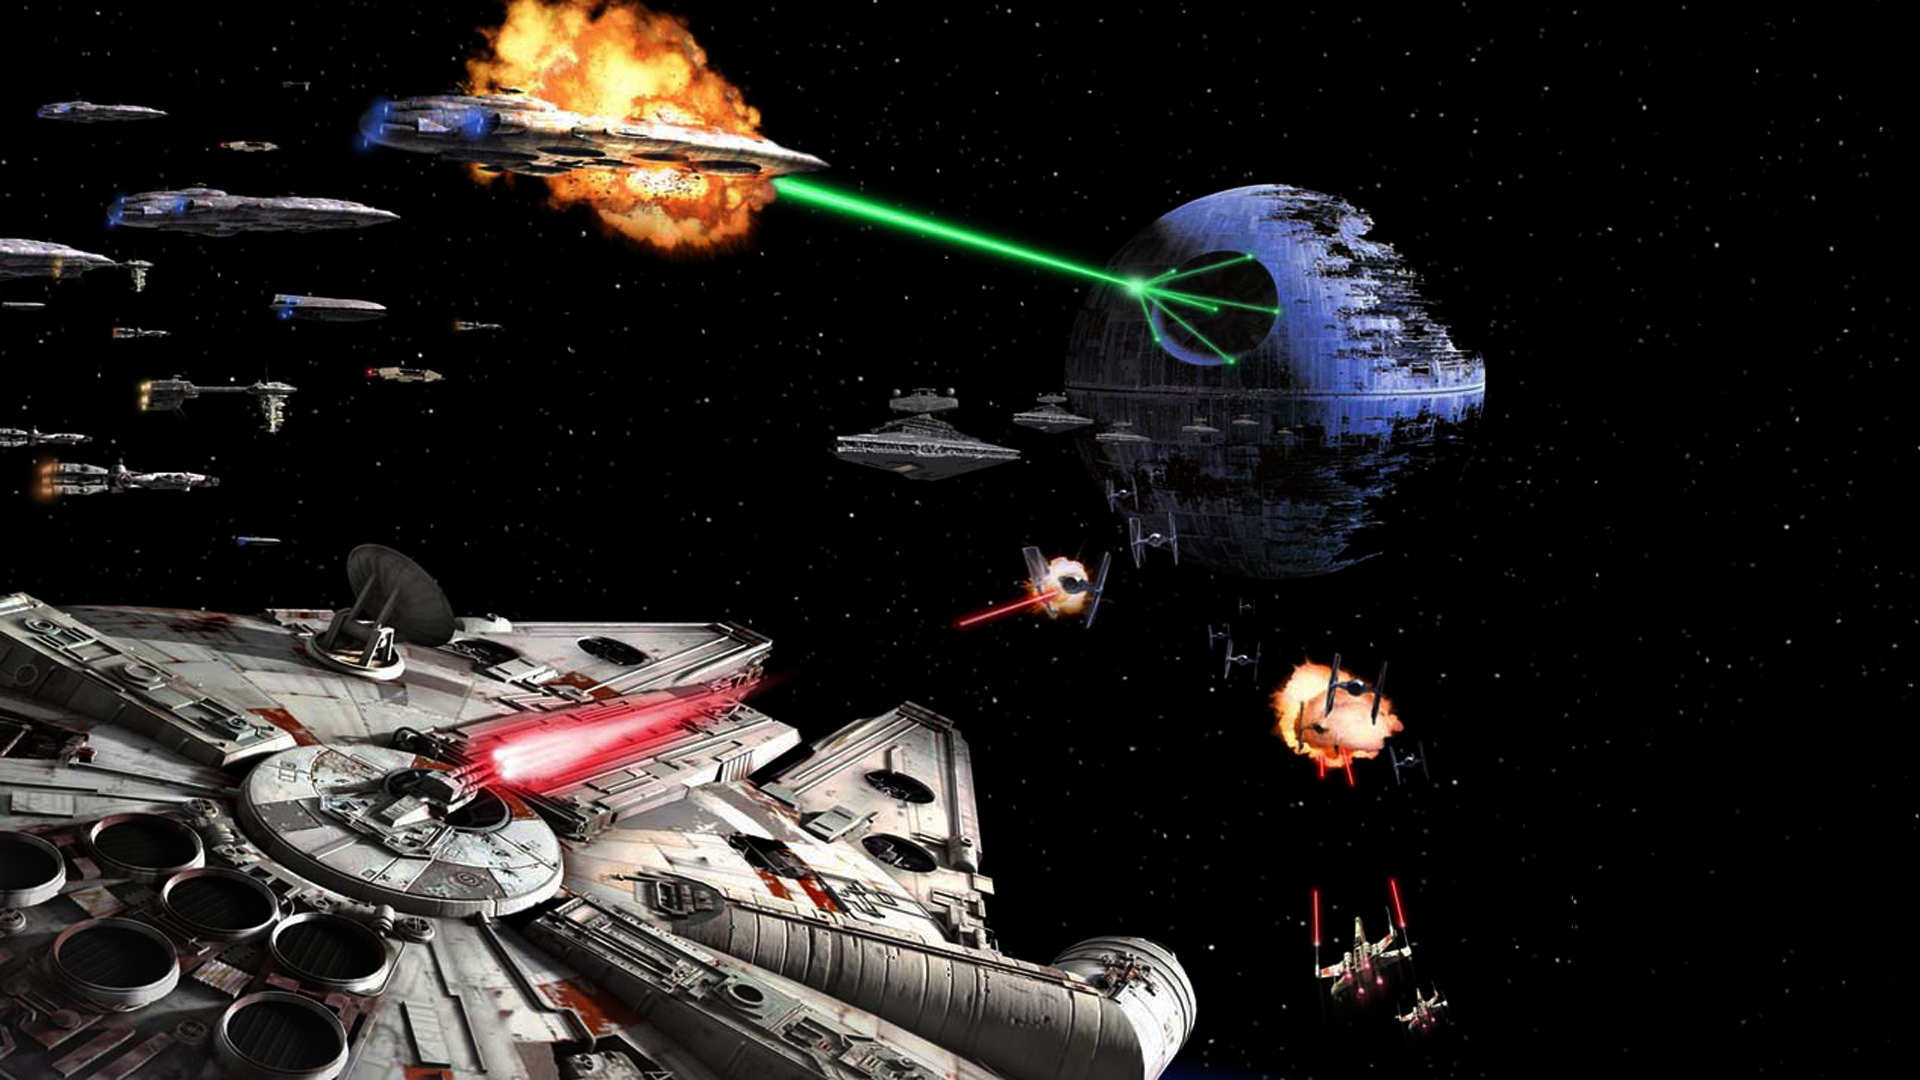 Star Wars Episode Vi Return Of The Jedi Wallpapers Pictures Images